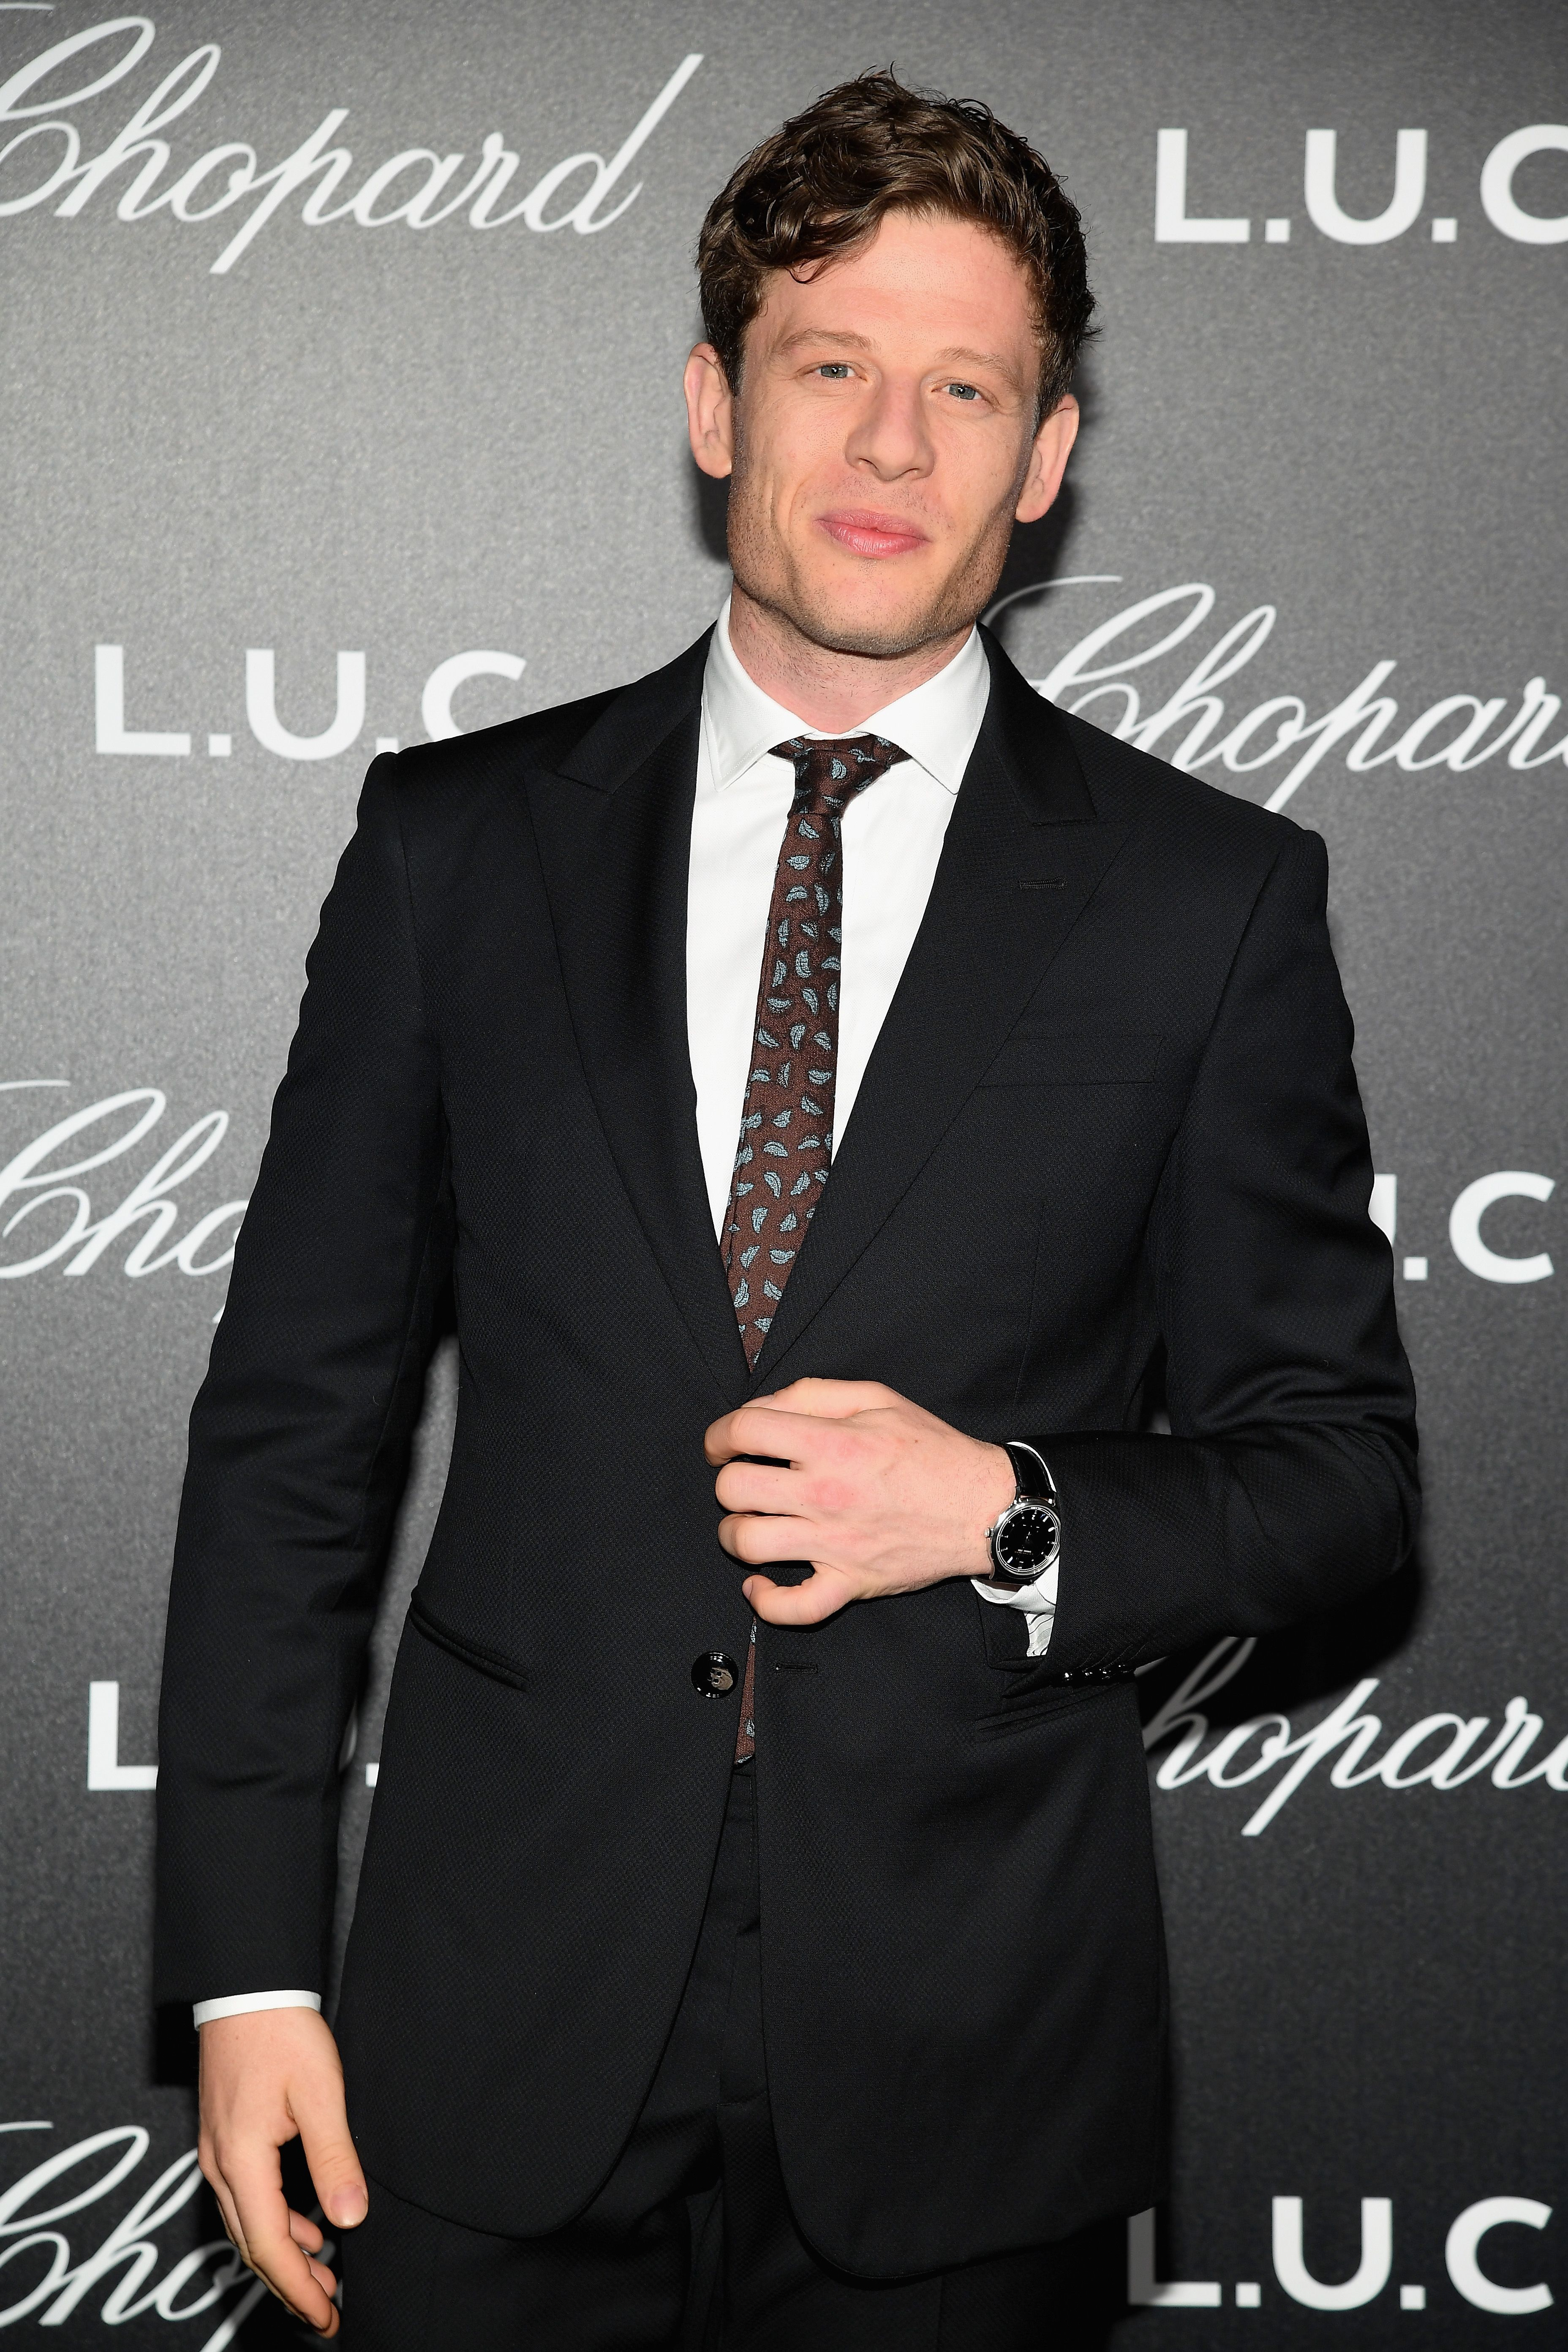 James Norton at the Chopard Gentleman's Evening in 2018 in Cannes, France | Source: Getty Images